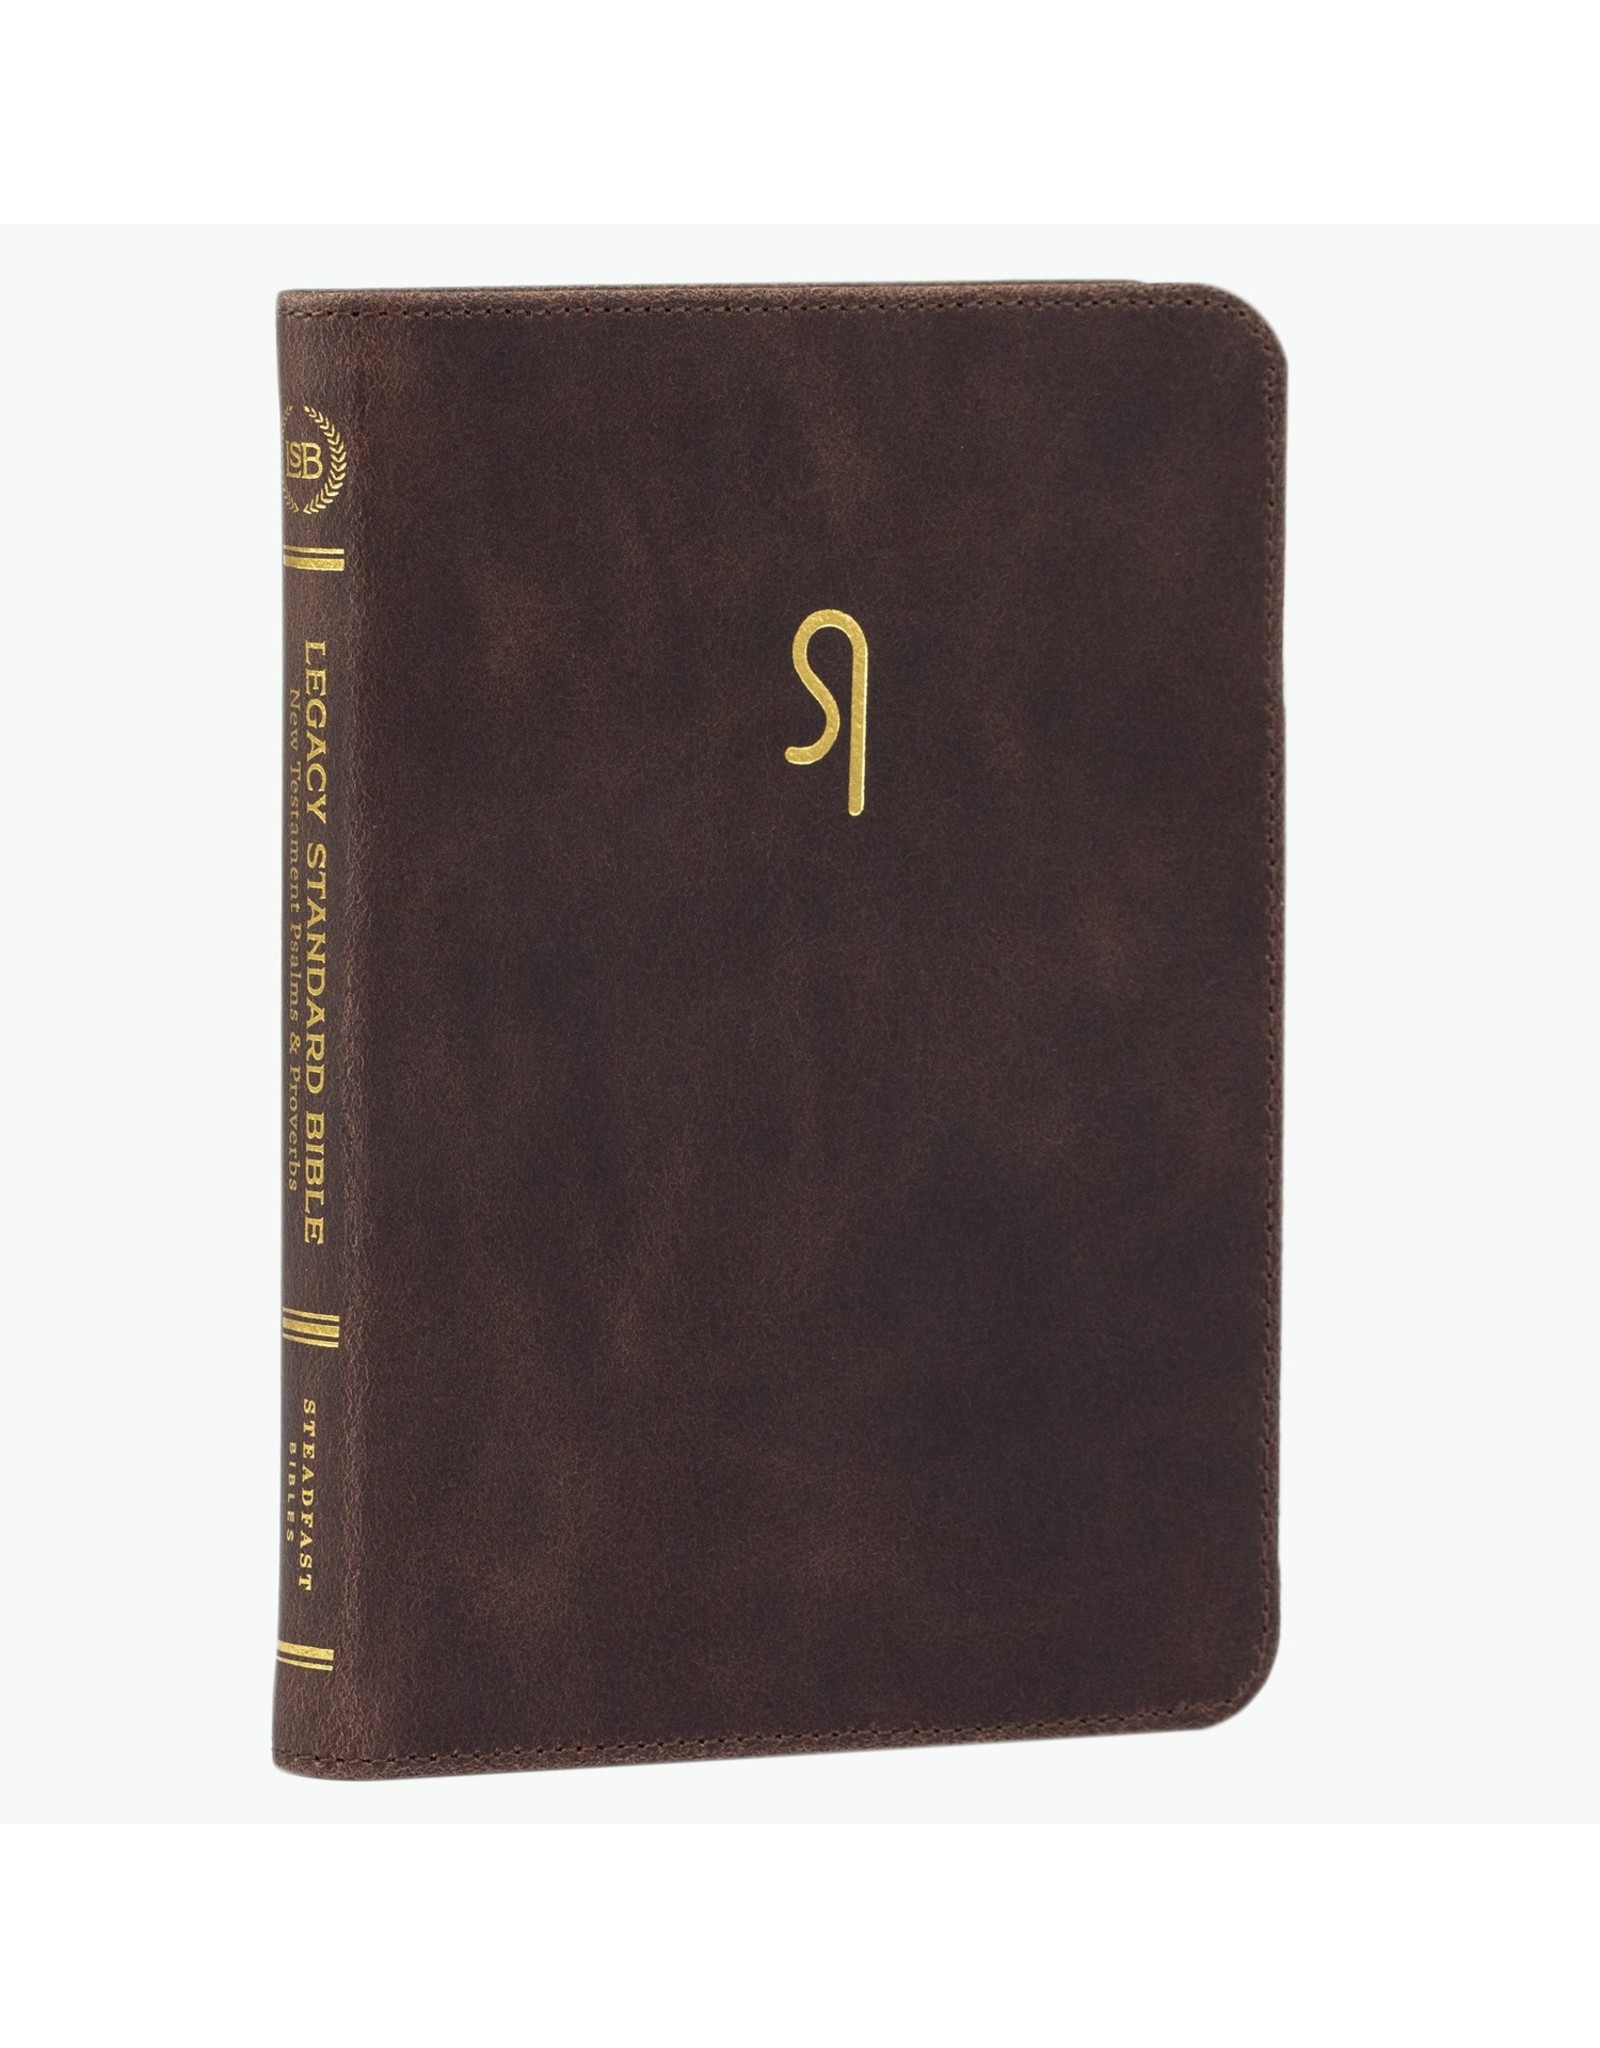 316 Publishing LSB New Testament with Psalms and Proverbs, Patina Brown Cowhide (SC Logo)